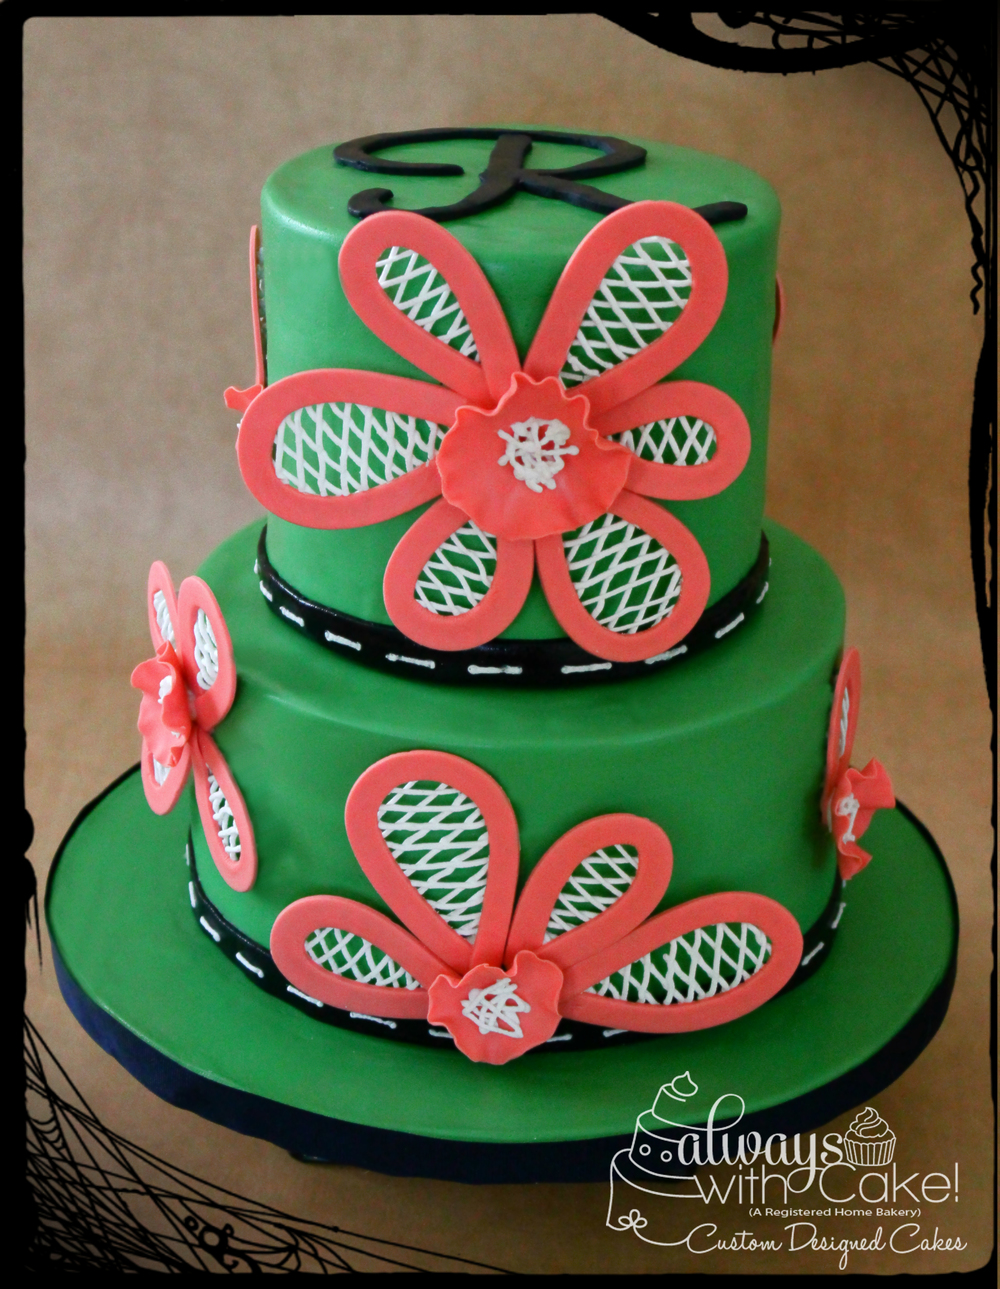 Lattice Flower Cake